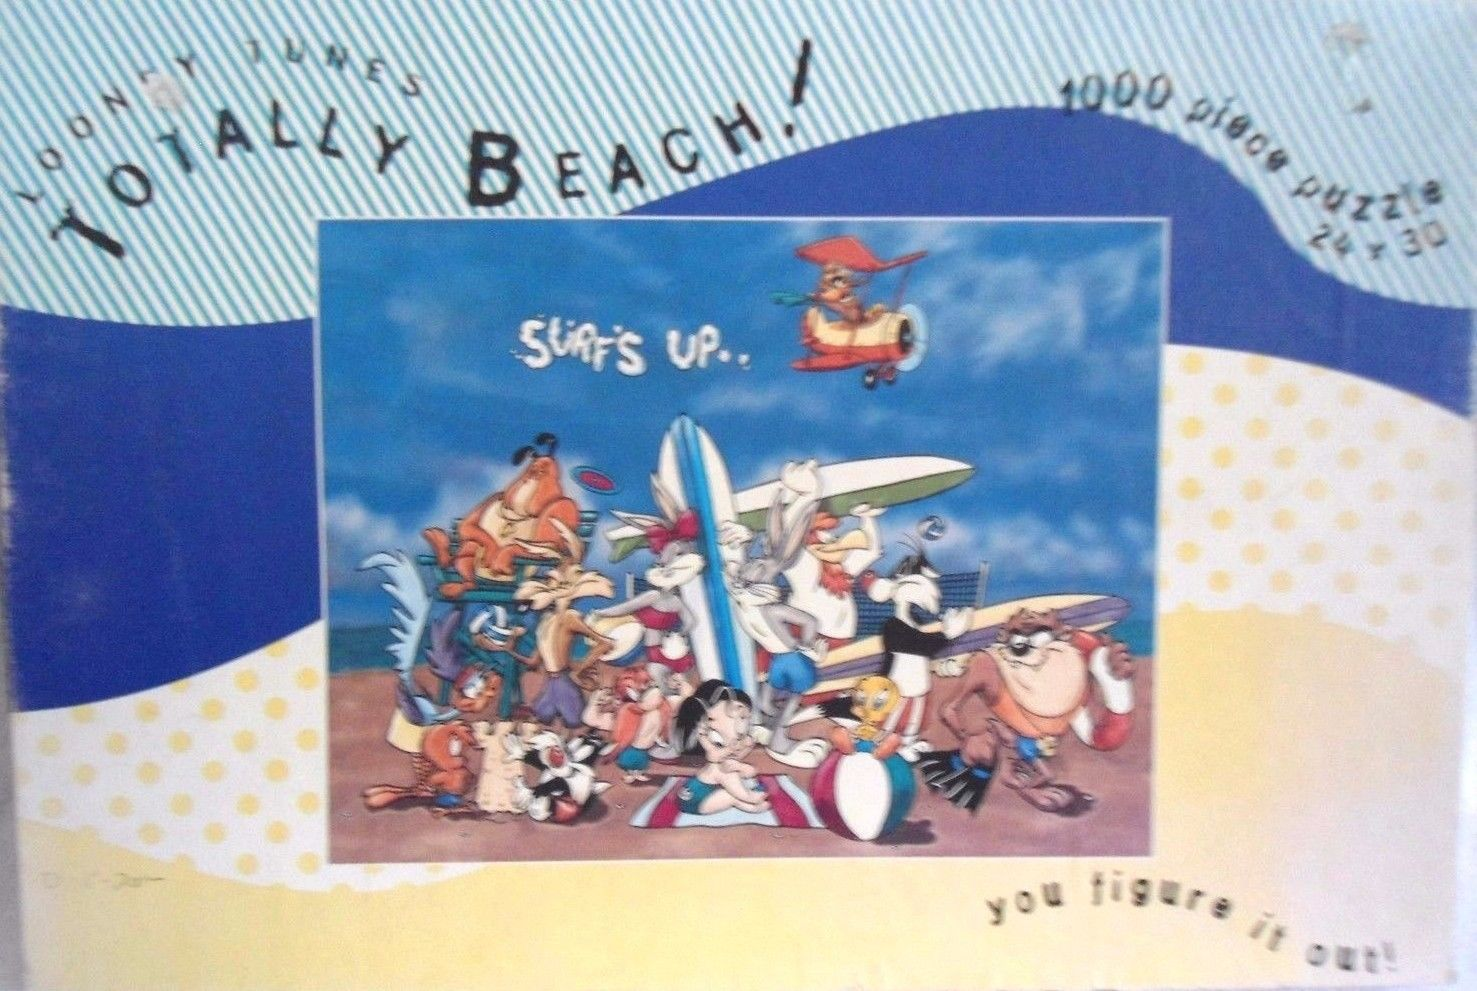 Totally Beach jigsaw puzzle